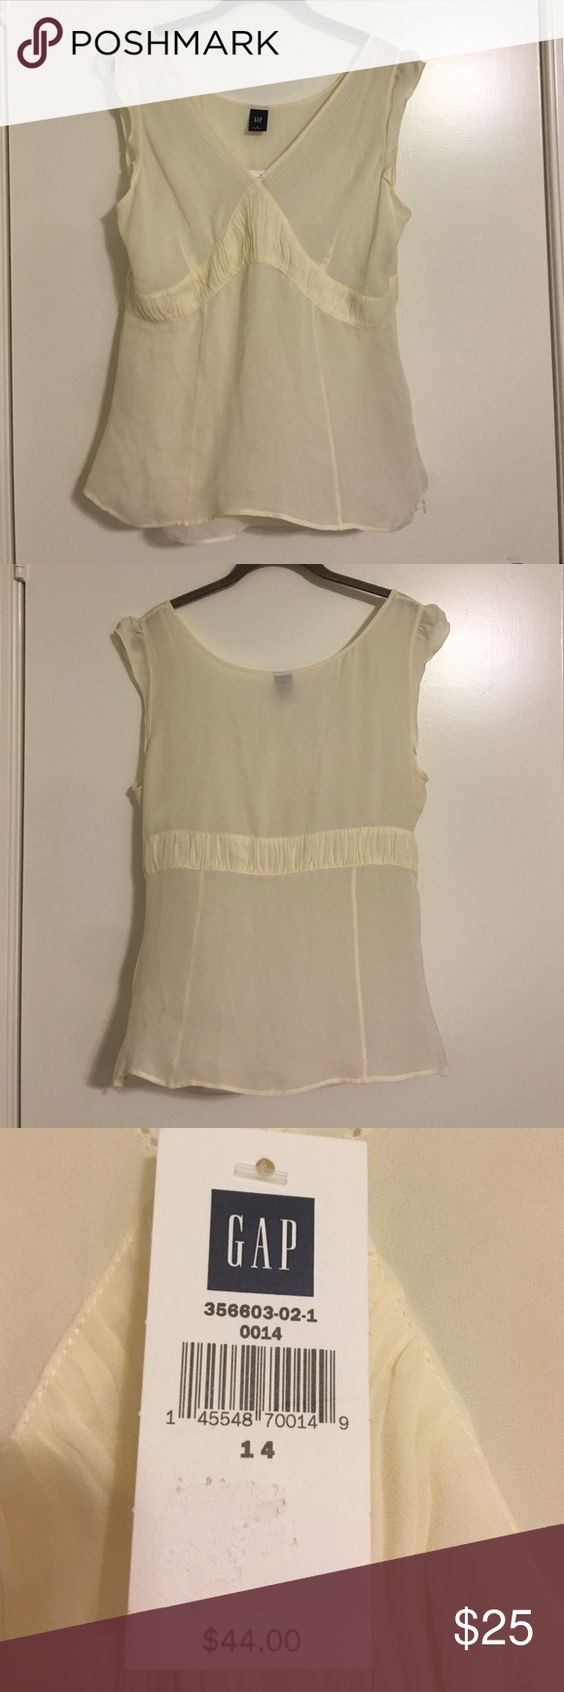 Gap cream flutter sheer blouse with tank Gap cream flutter sheer blouse with matching tank. Has a side zipper - extremely flattering - this is a reposh- unfortunately doesn't quite fit me as expected. GAP Tops Blouses